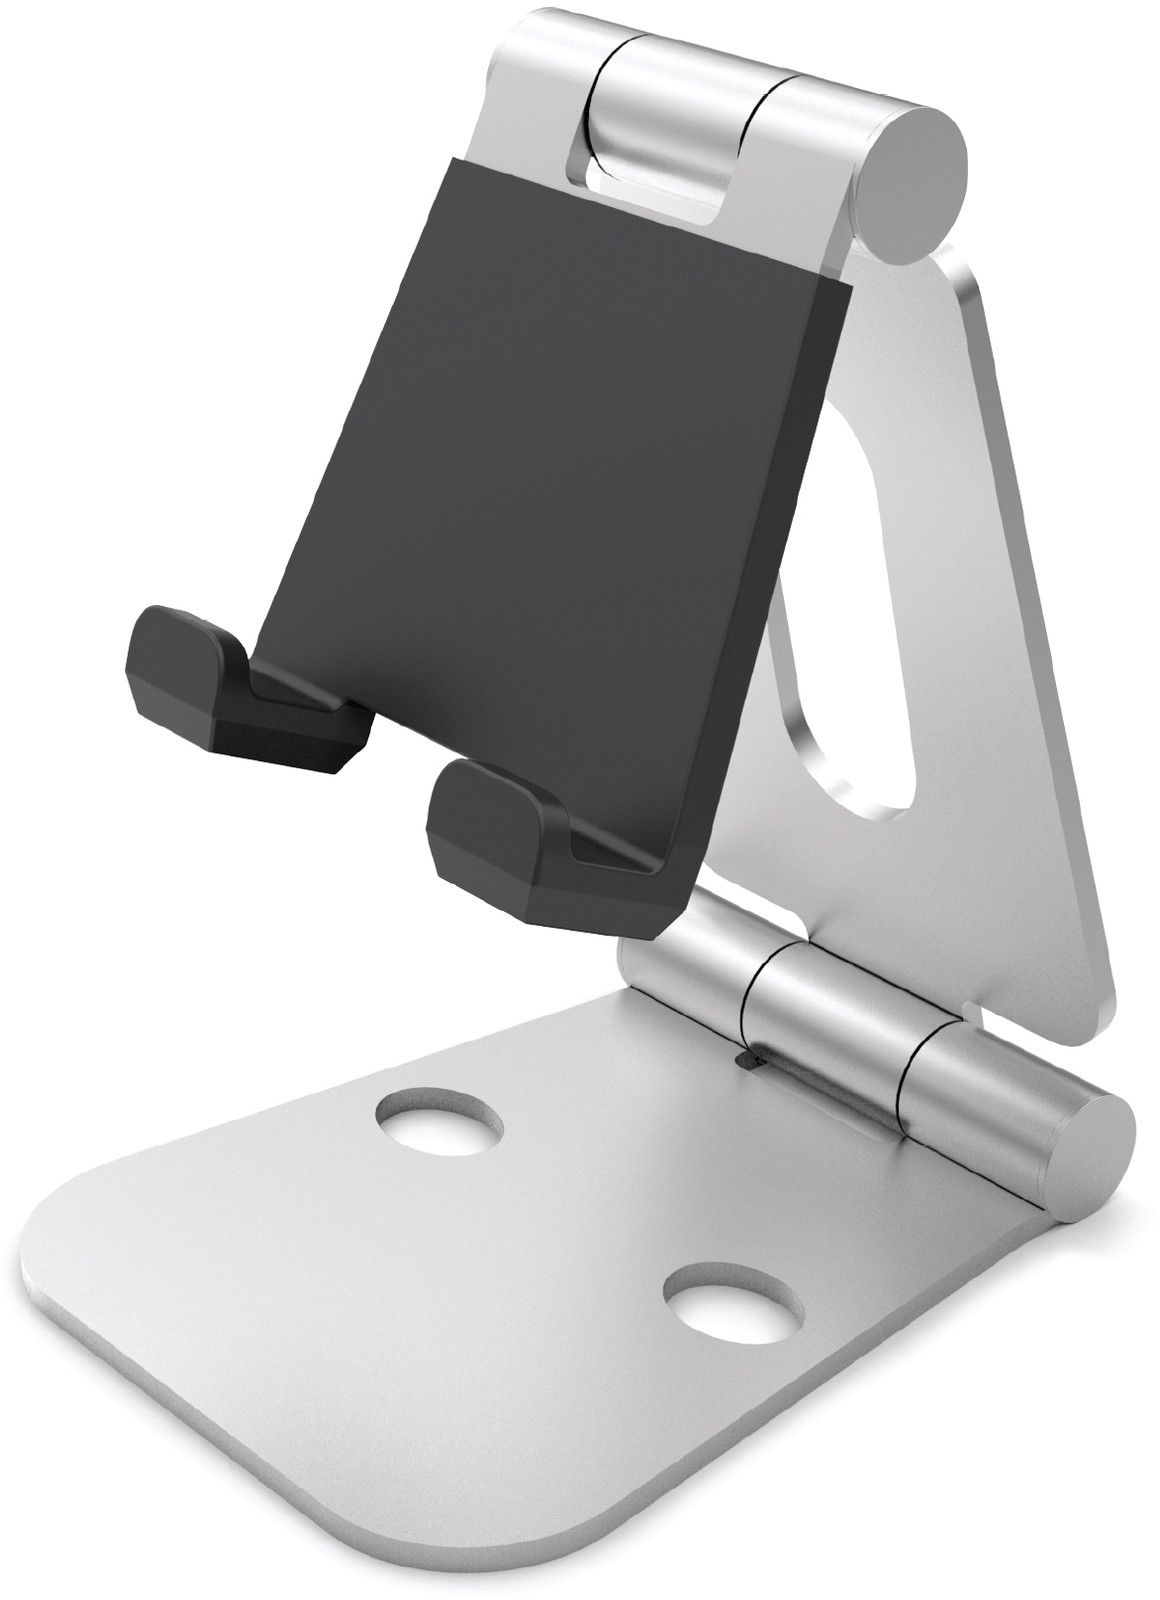 Desire2 Rotatable Stand (iPhone/iPad) - Silver